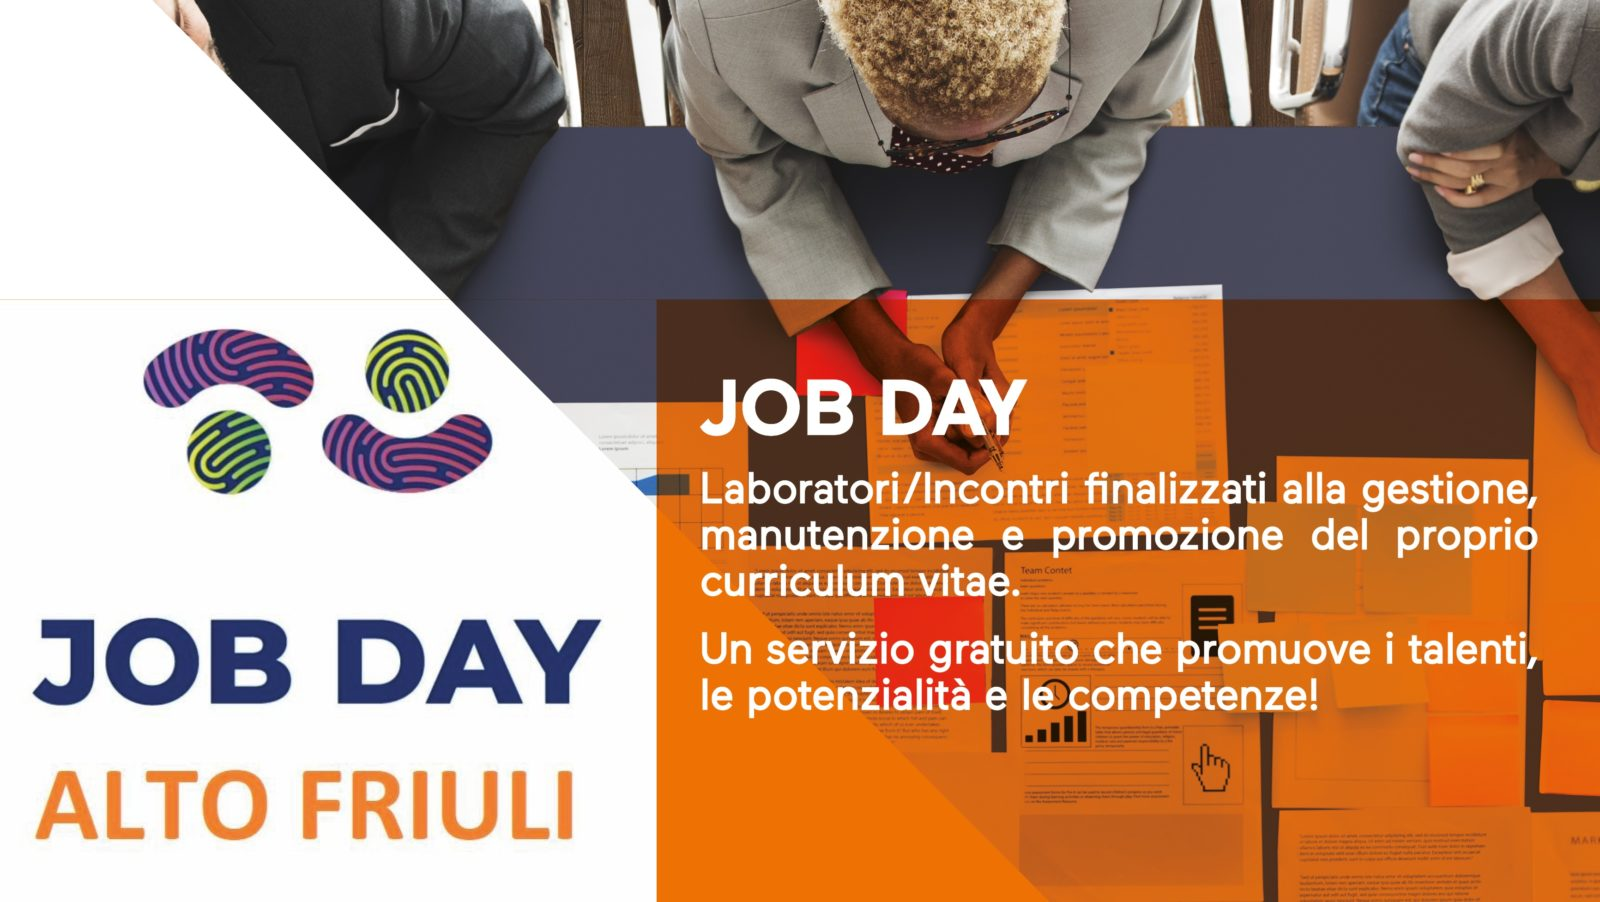 Job Day Occasioni Di Lavoro E Opportunita Di Carriera